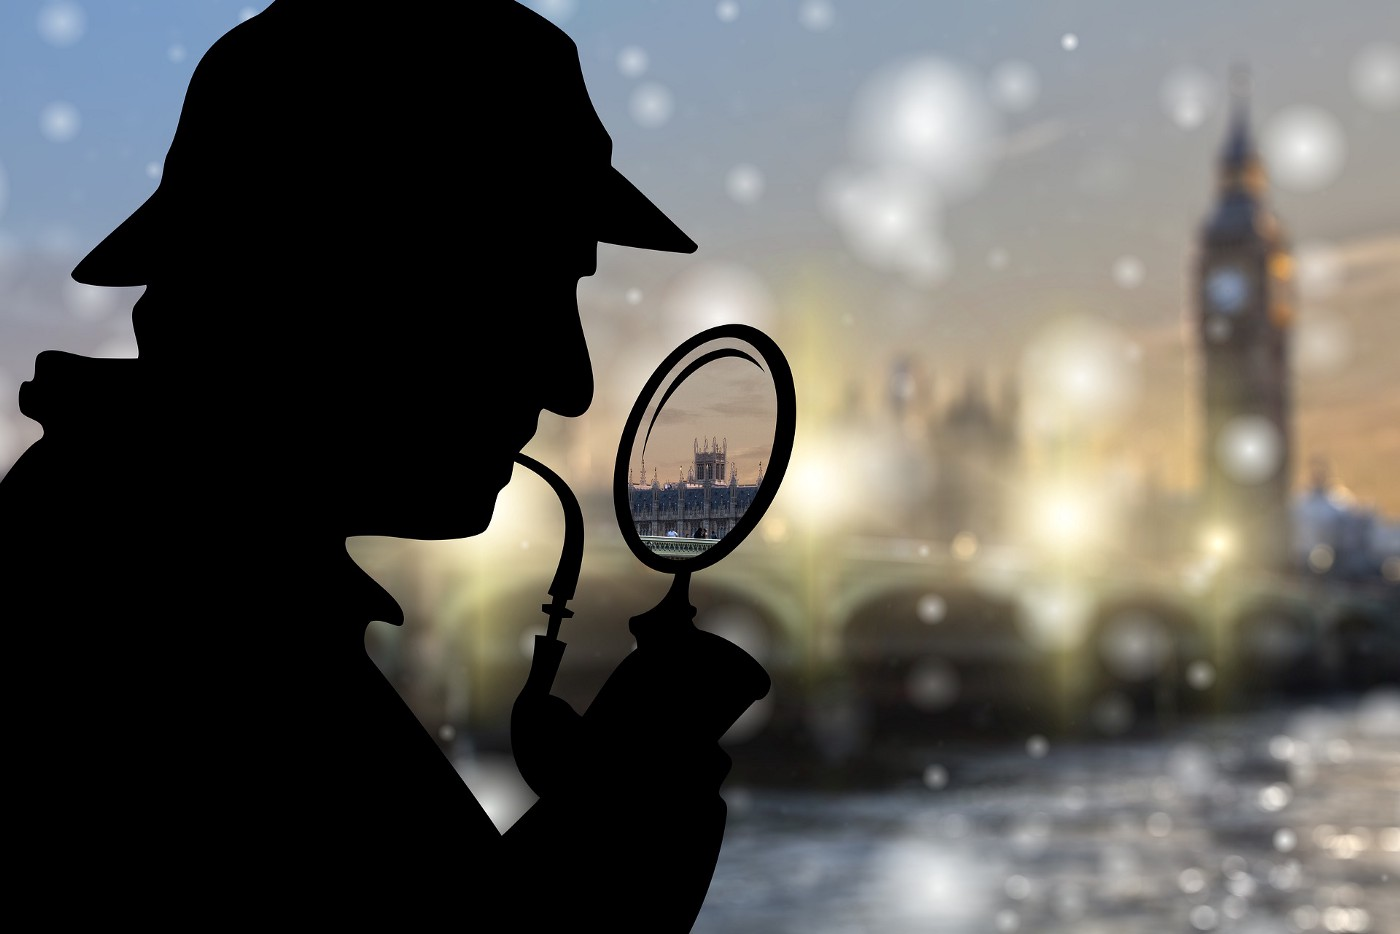 Sherlock Holmes with a magnifying glass.